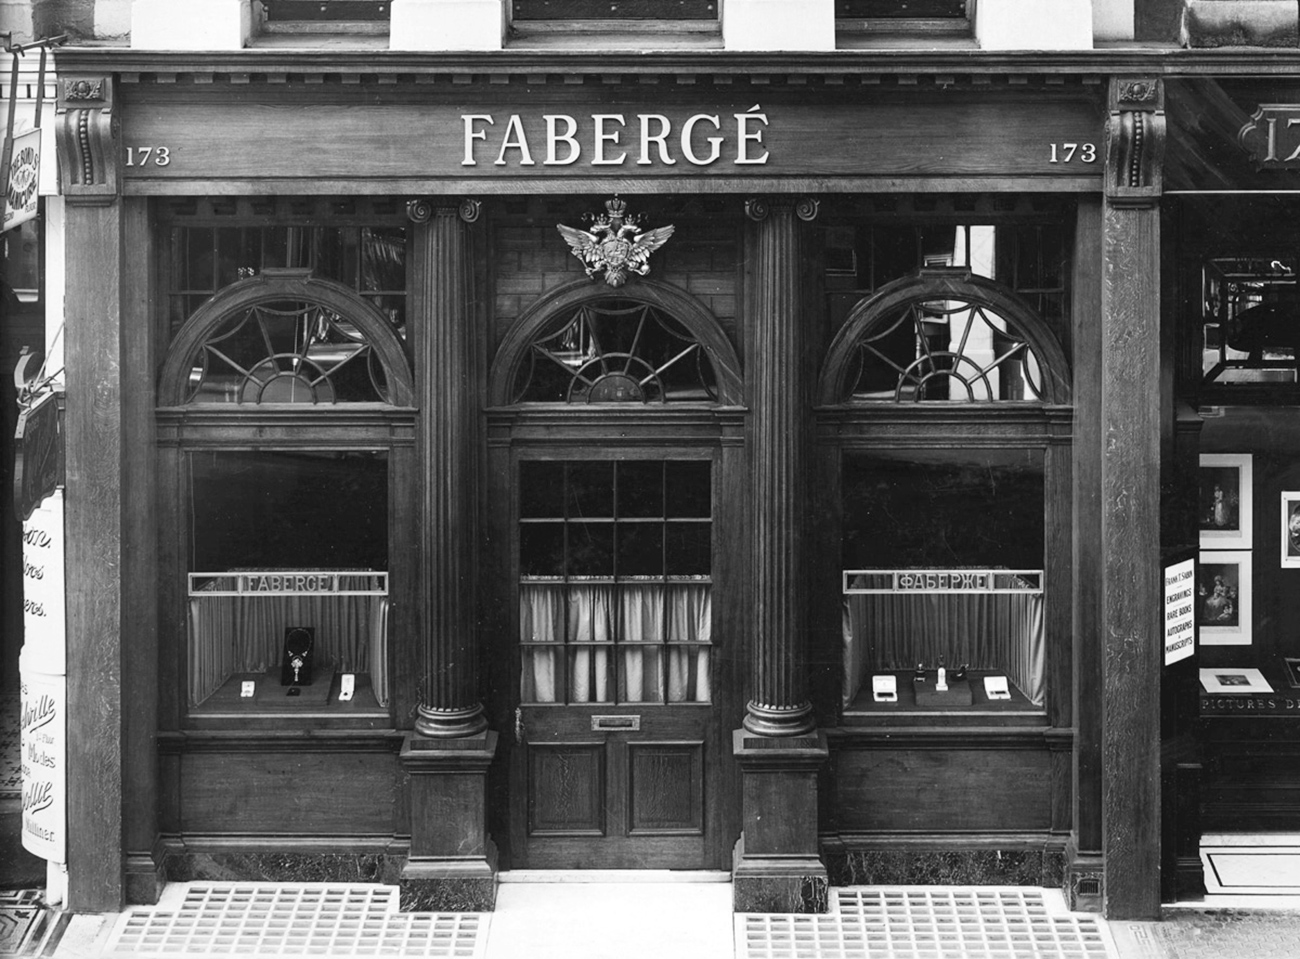 Faberge store on 173 New Bond street, London, 1910.